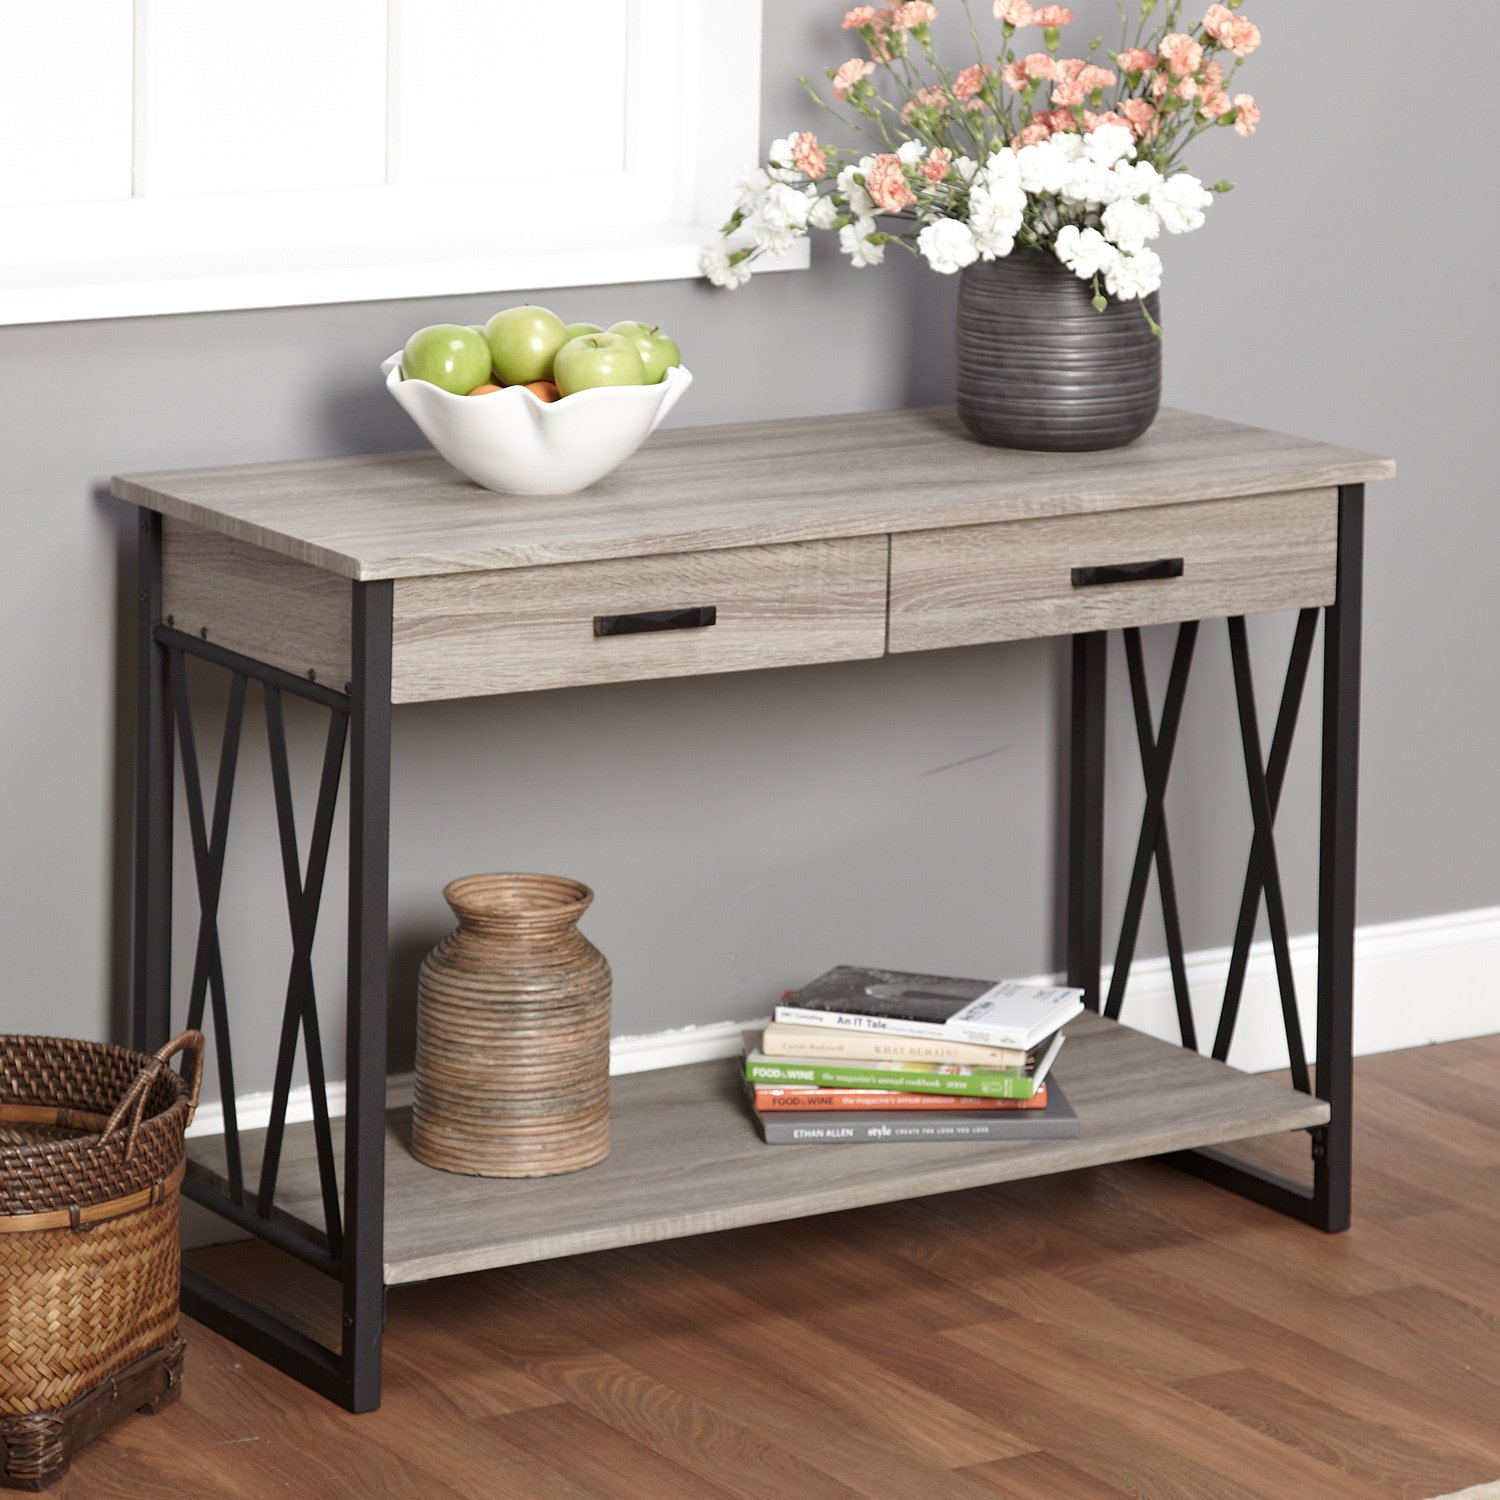 console sofa table living home furniture decor room hallway accent entryway wood ebay. Black Bedroom Furniture Sets. Home Design Ideas